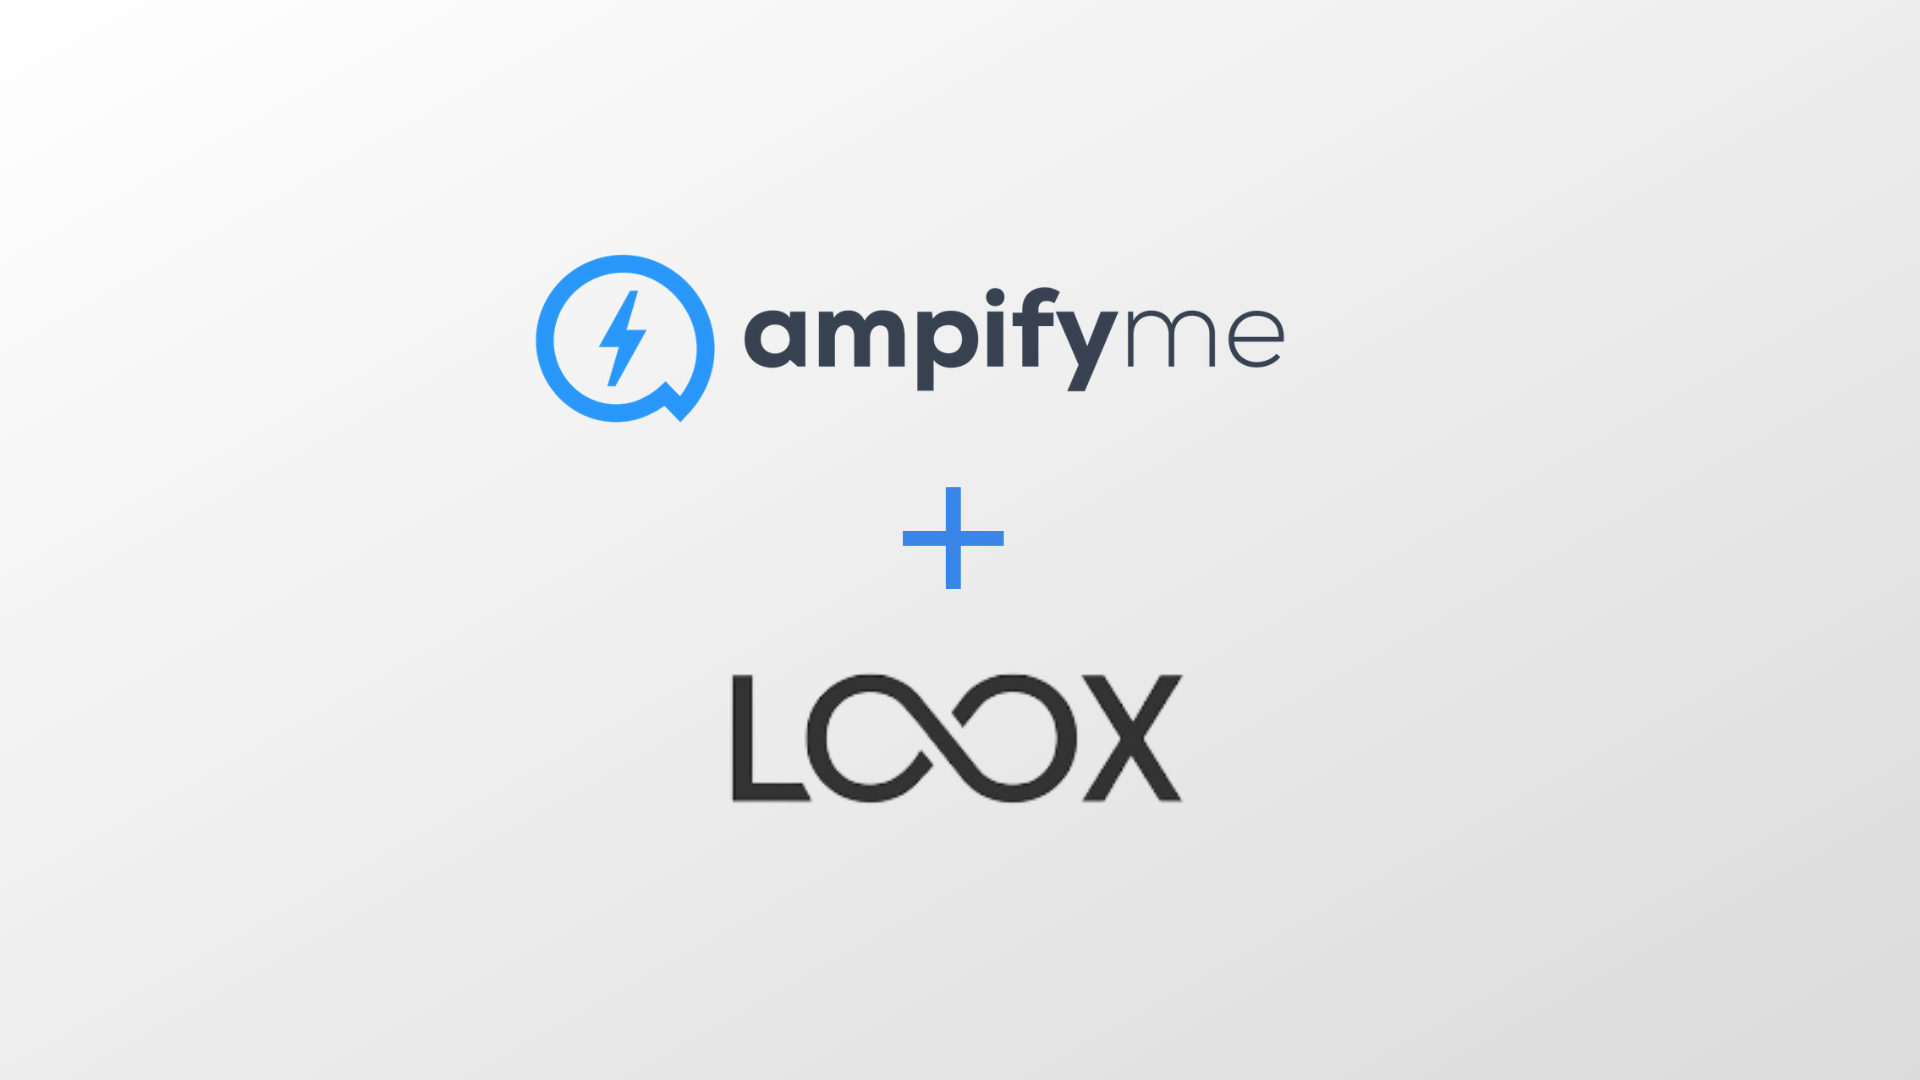 ampify me loox integration